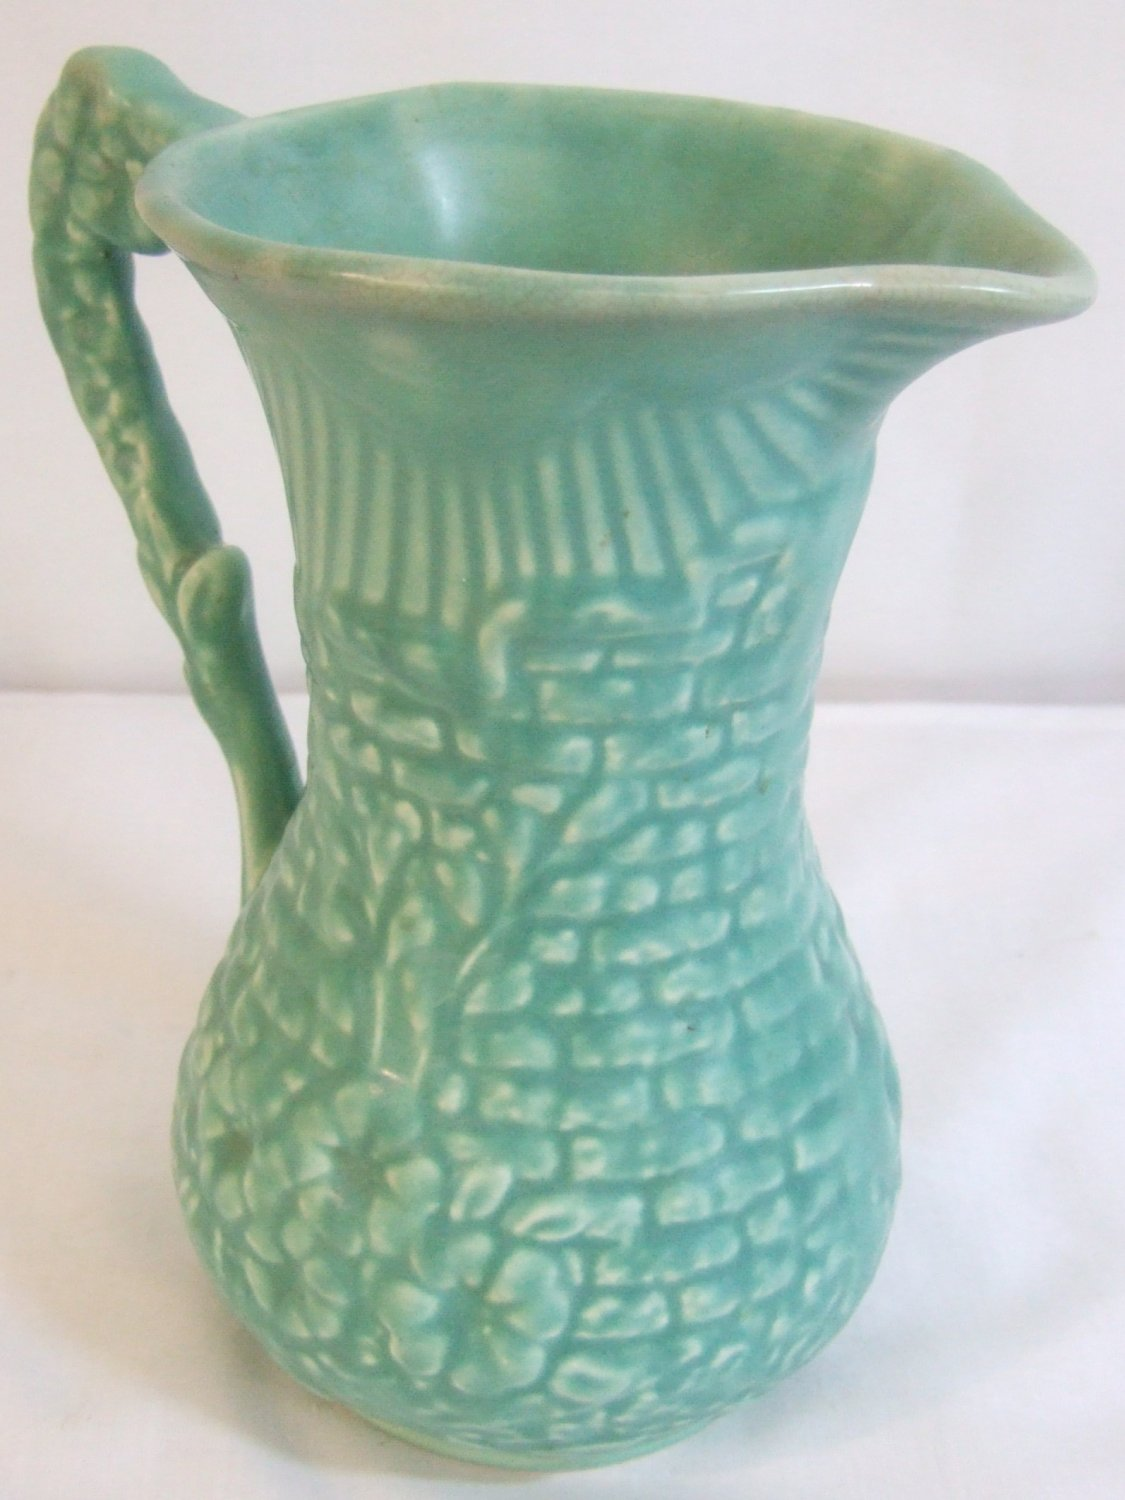 1950s Arthur Wood Large Pottery Jug Ewer Garden Wall